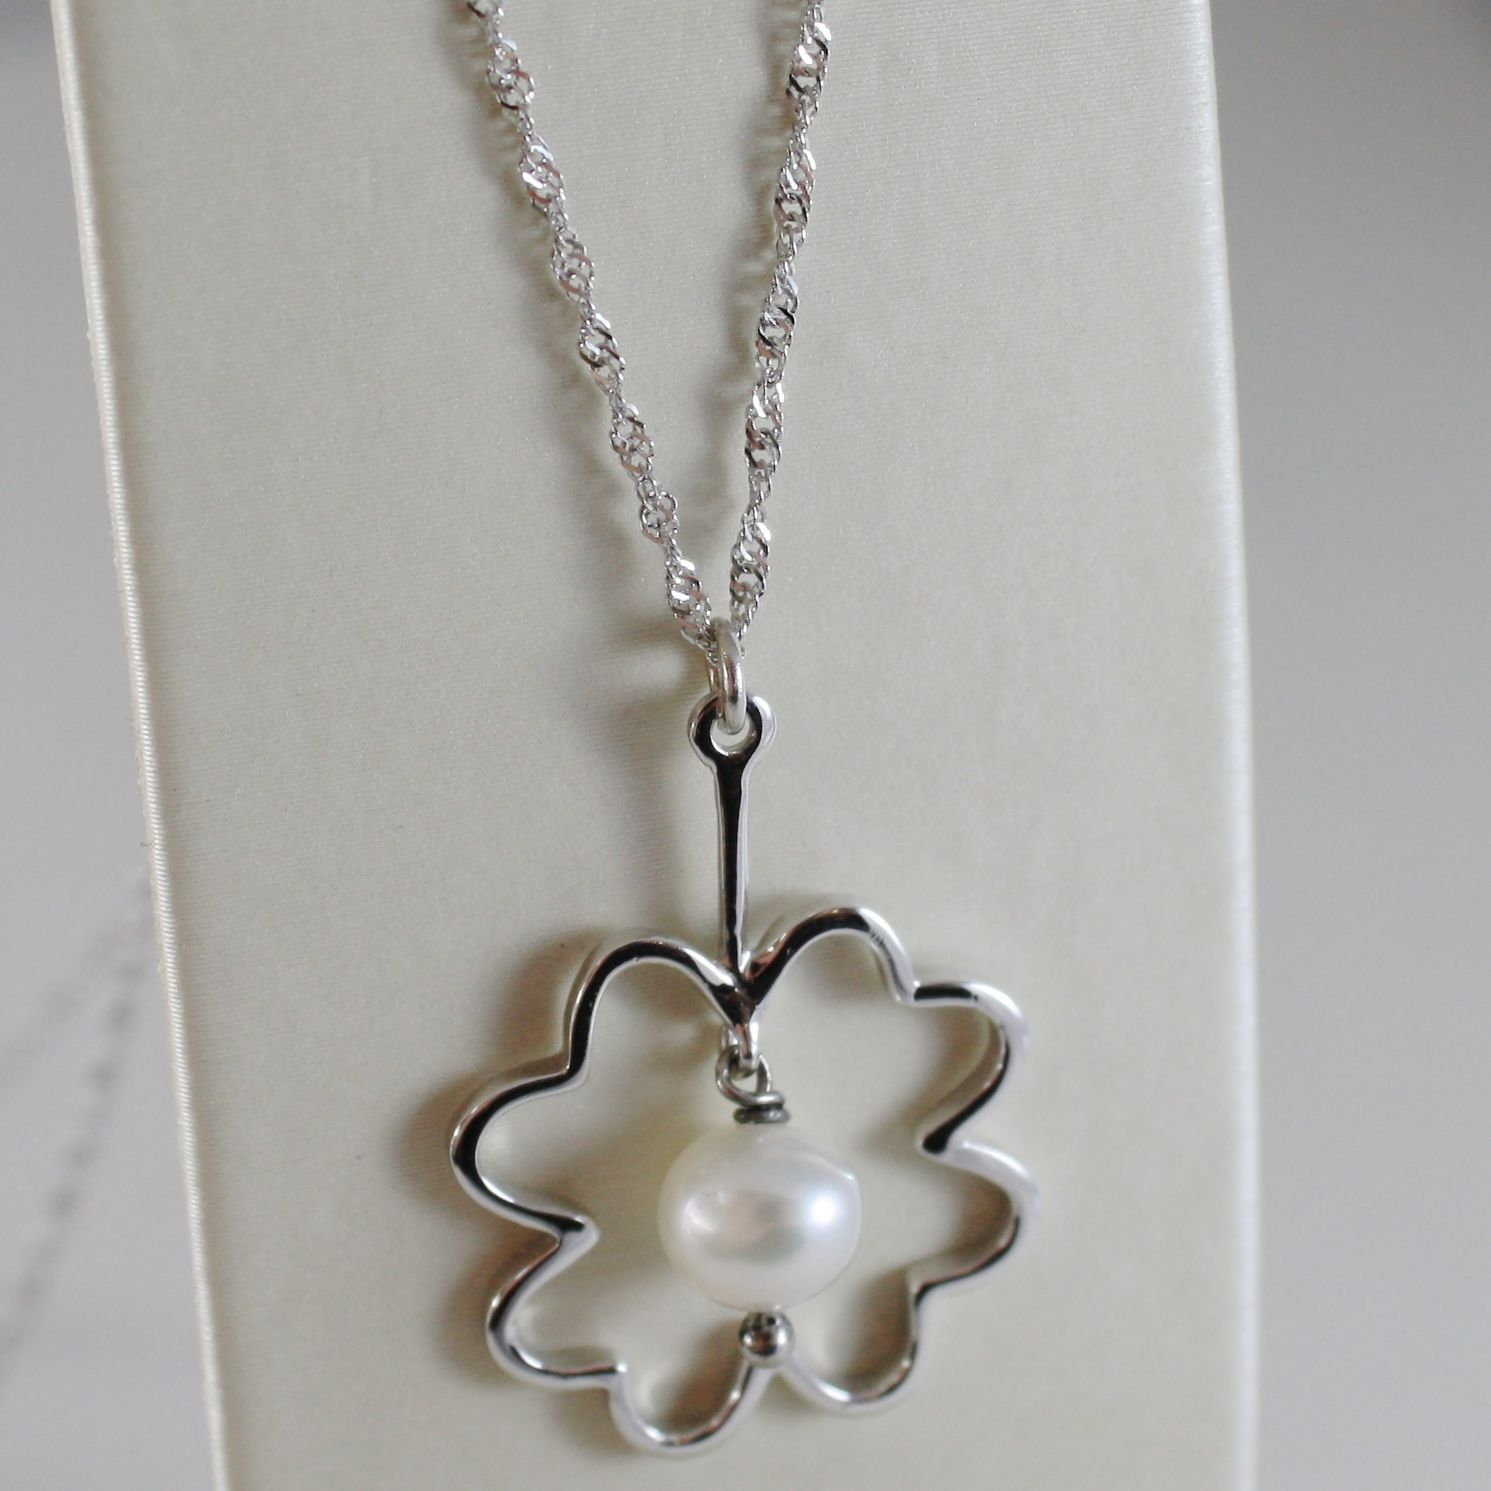 18K WHITE GOLD CHAIN NECKLACE WITH FLOWER AND WHITE PEARL 6 MM, MADE IN ITALY